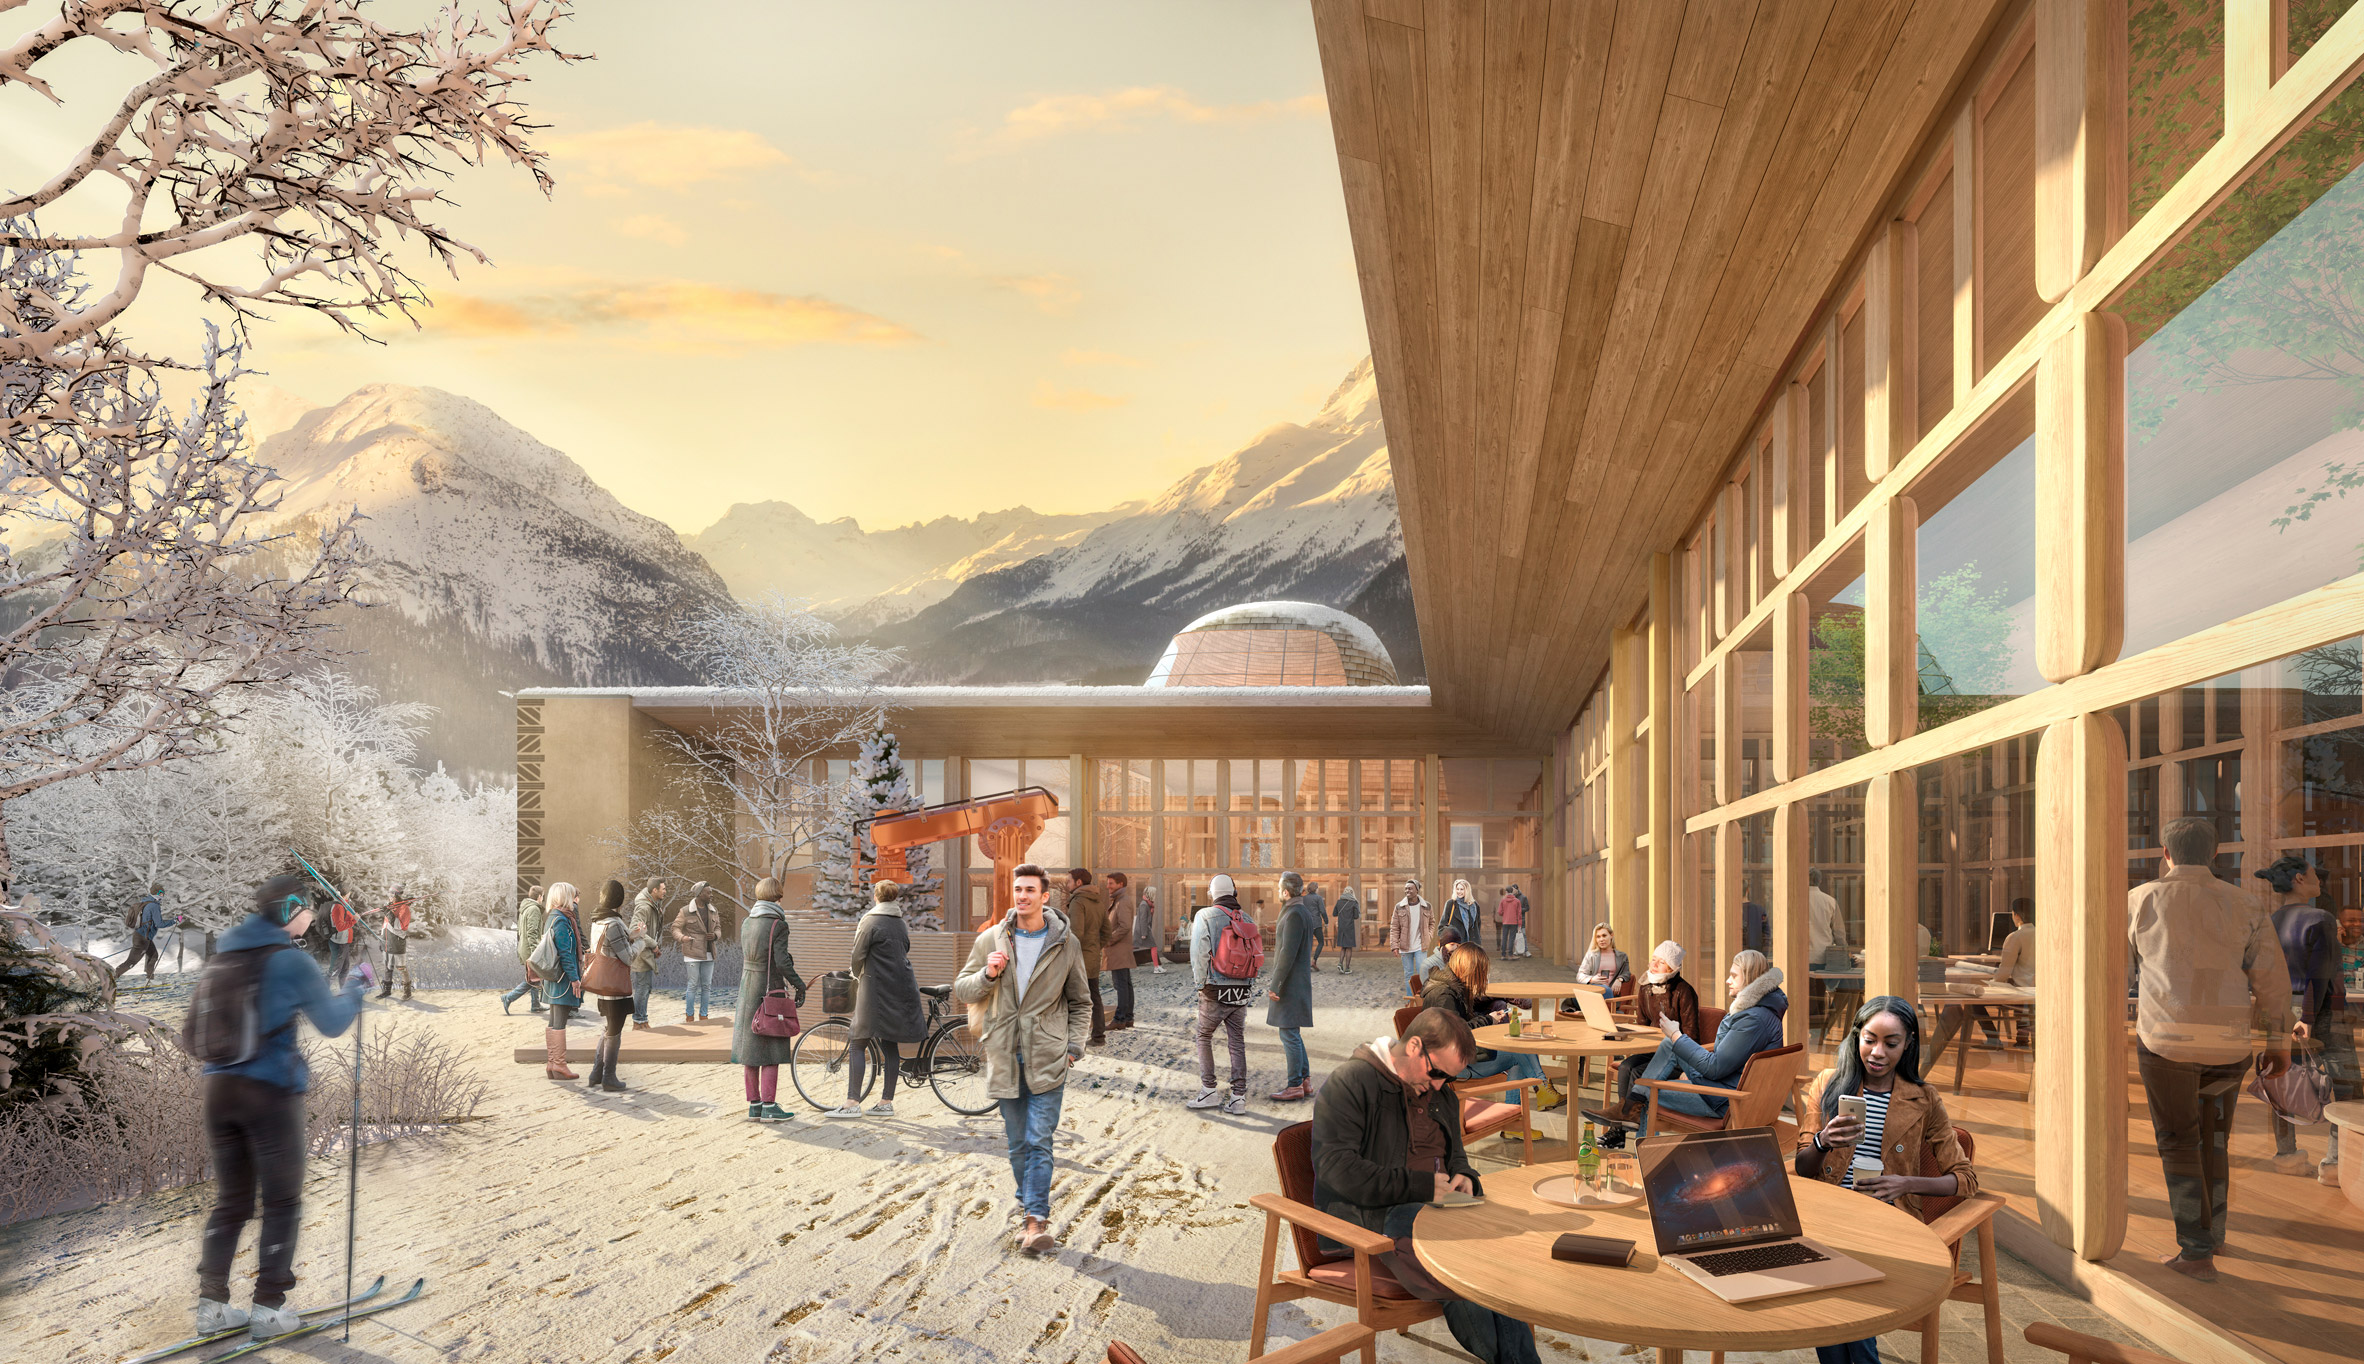 The larch-clad exterior of an innovation hub in the Swiss Alps